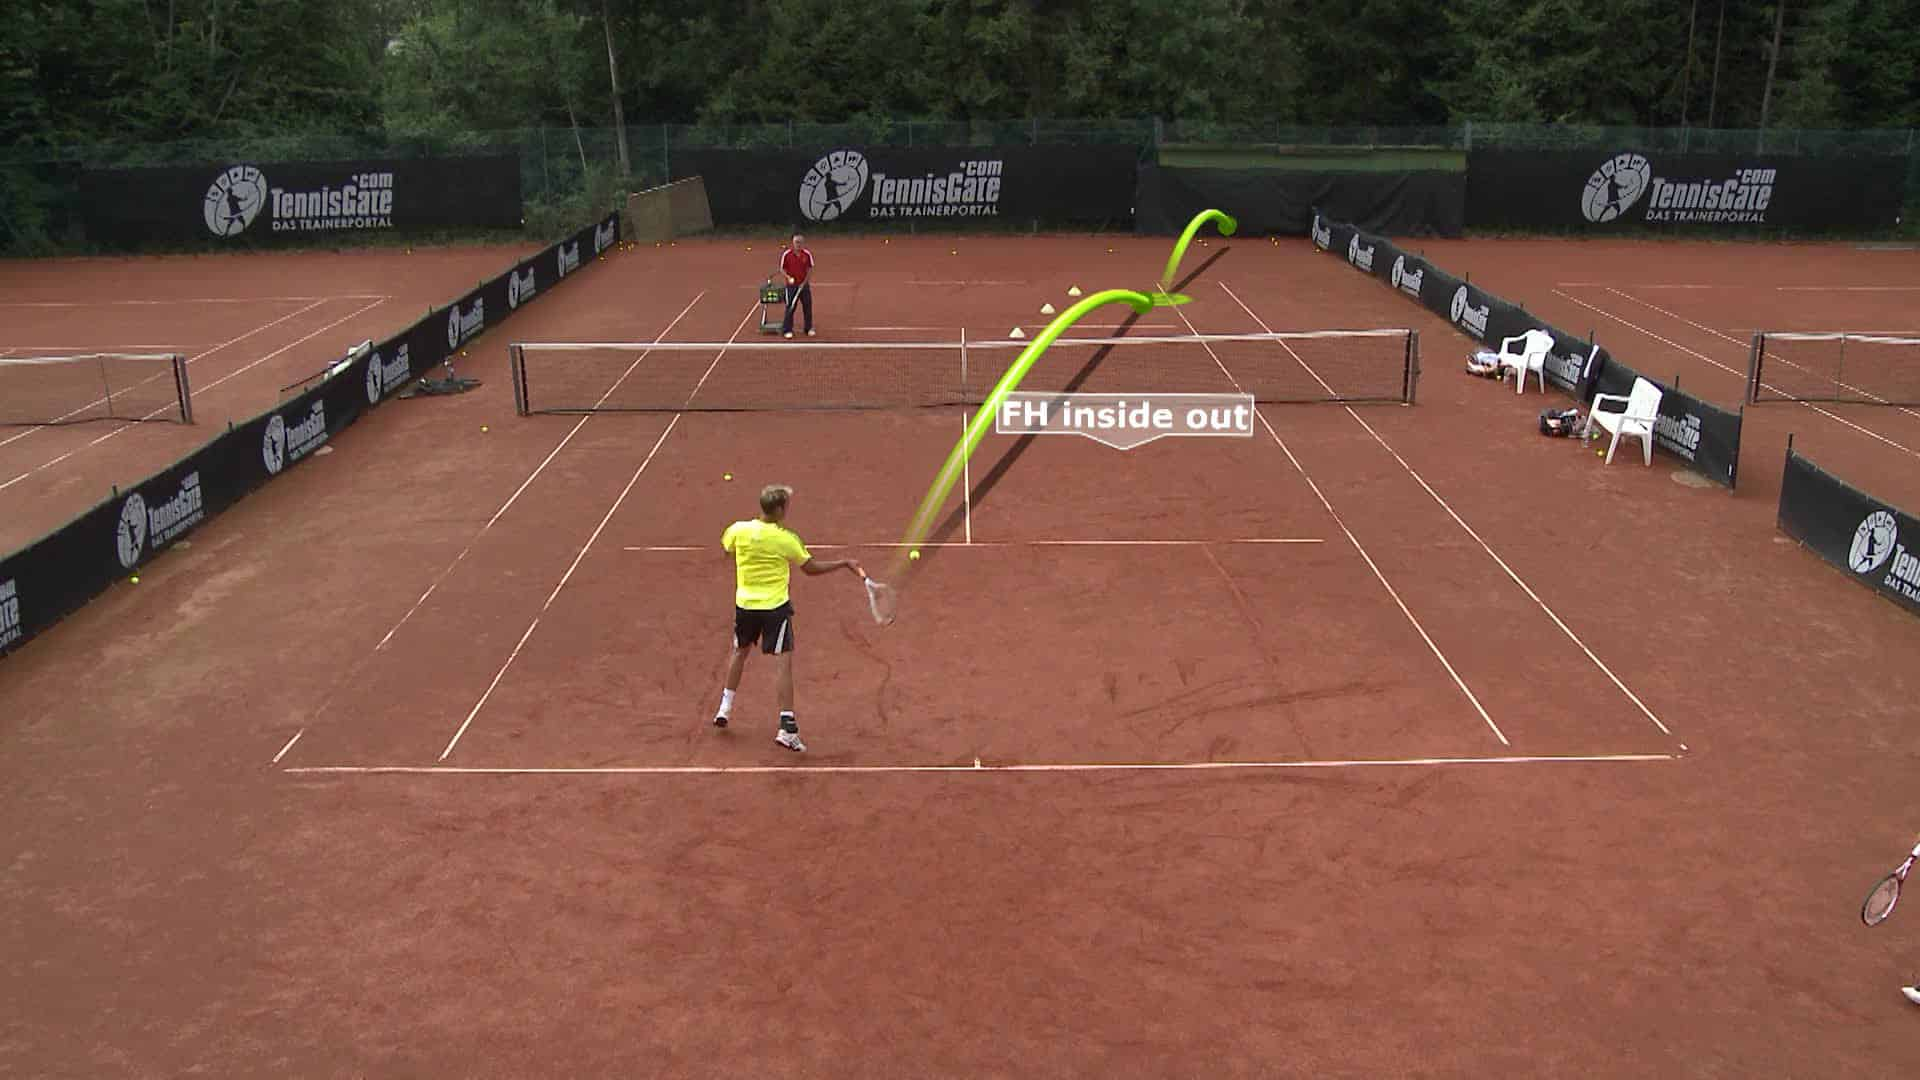 Stroke Training: Forehand Inside Out